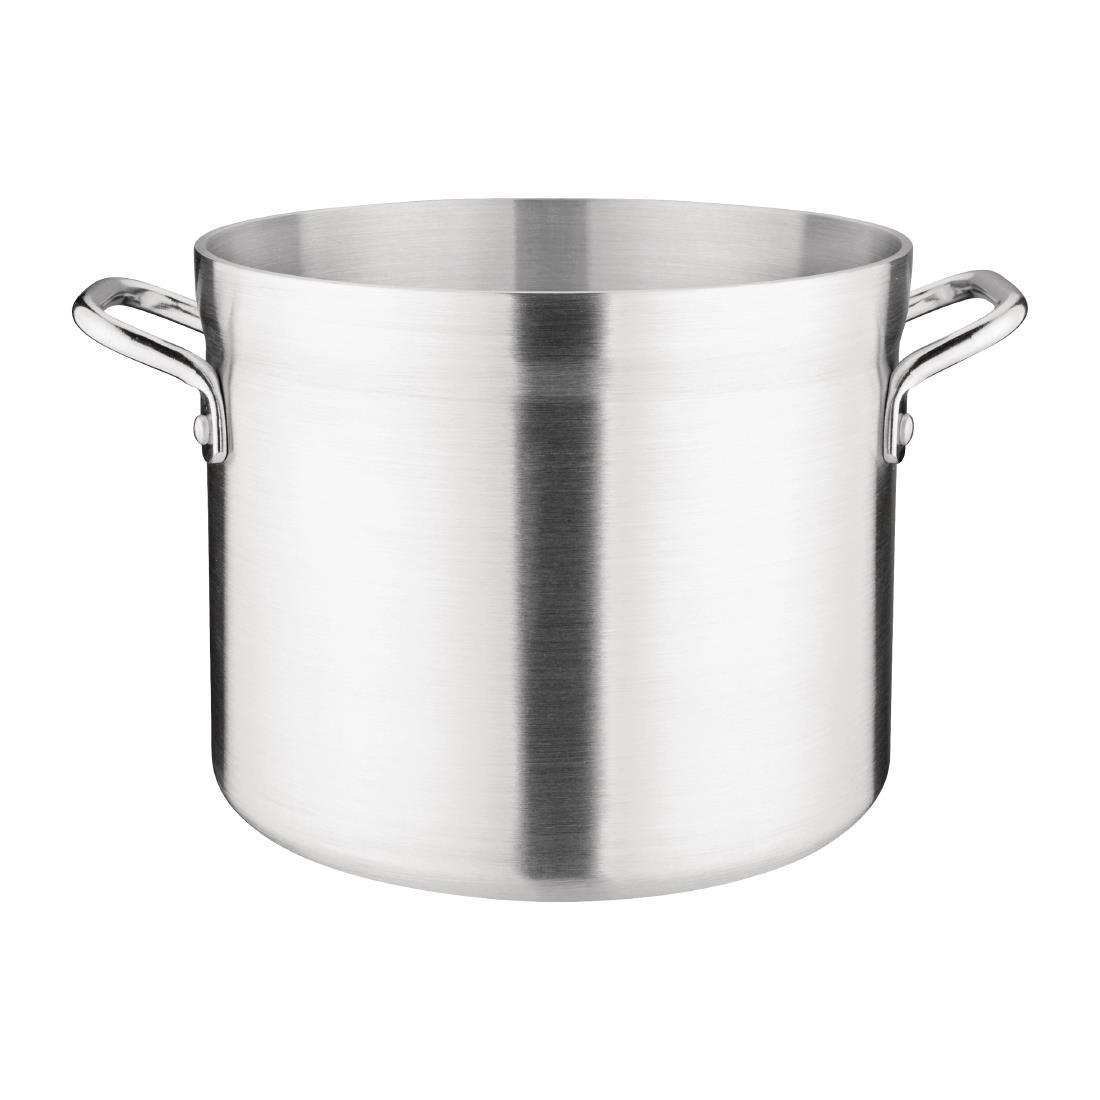 Vogue Deep Boiling Pot 11.4Ltr - S349